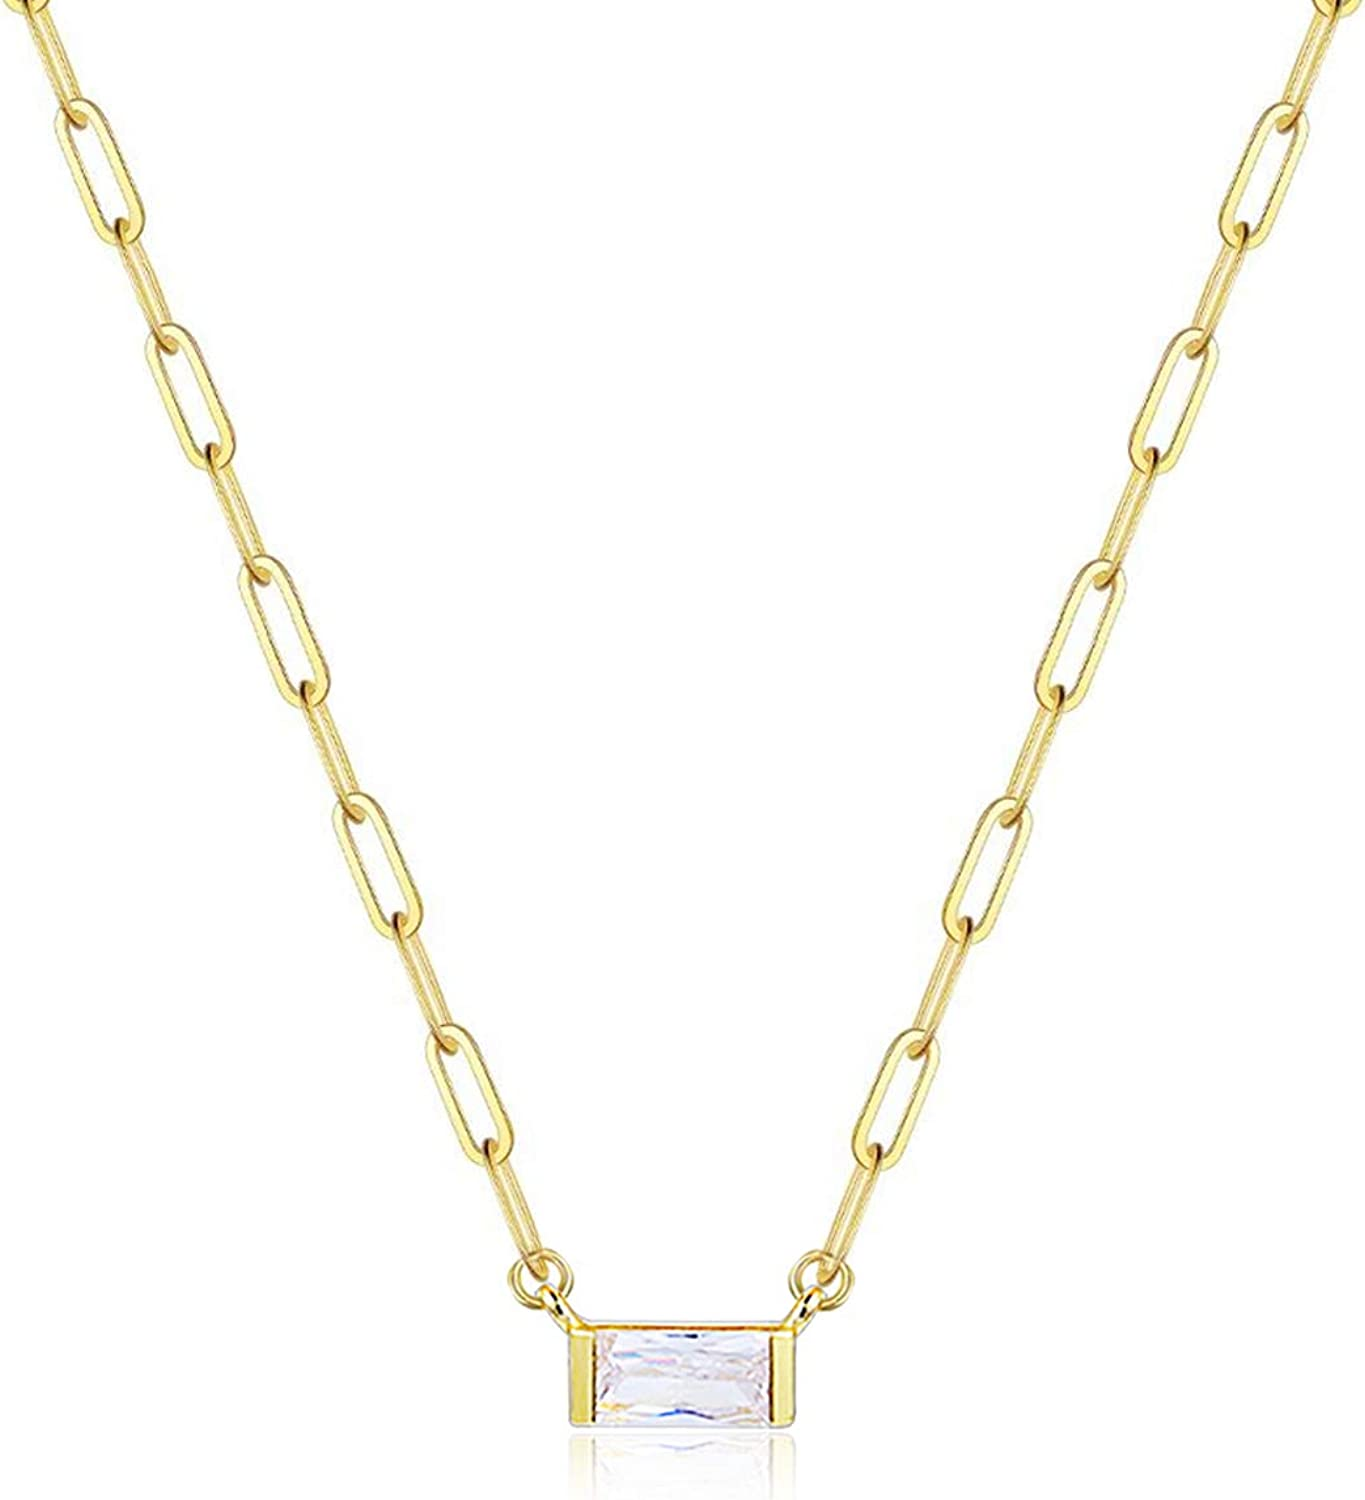 14K Gold Plated CZ Solitaire Pendant Necklace | Link Chain Necklace Jewelry for Women Girls